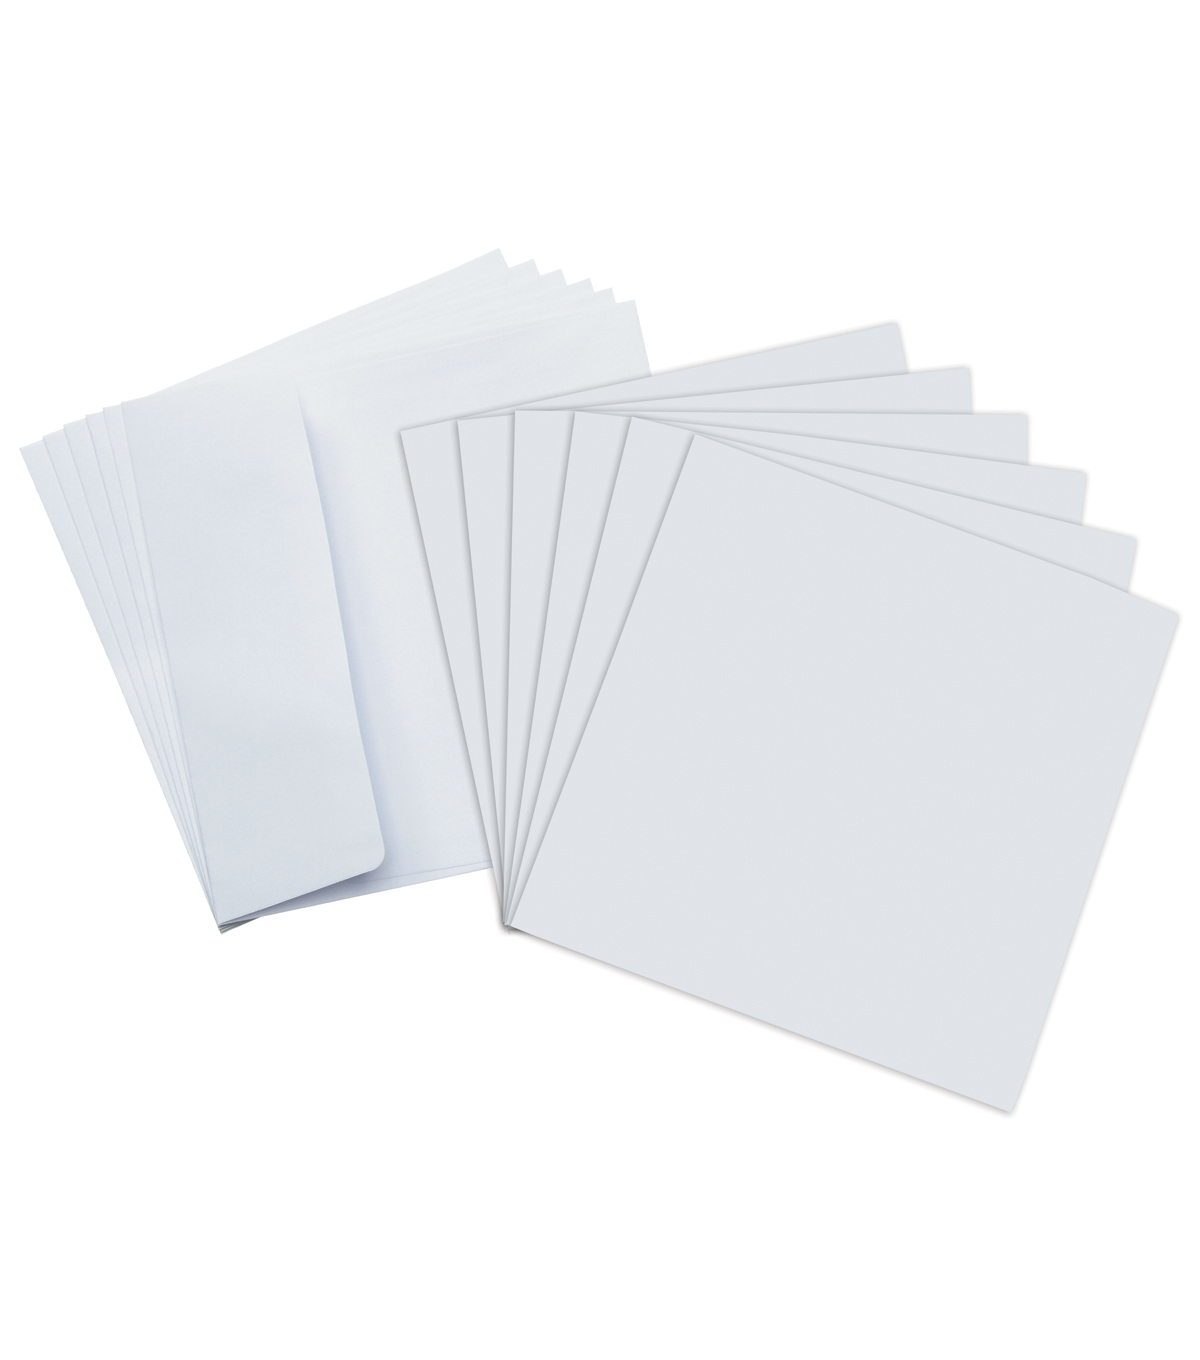 Core\u0027dinations Card/Envelopes:  5.5x5.5 White; 50 pack